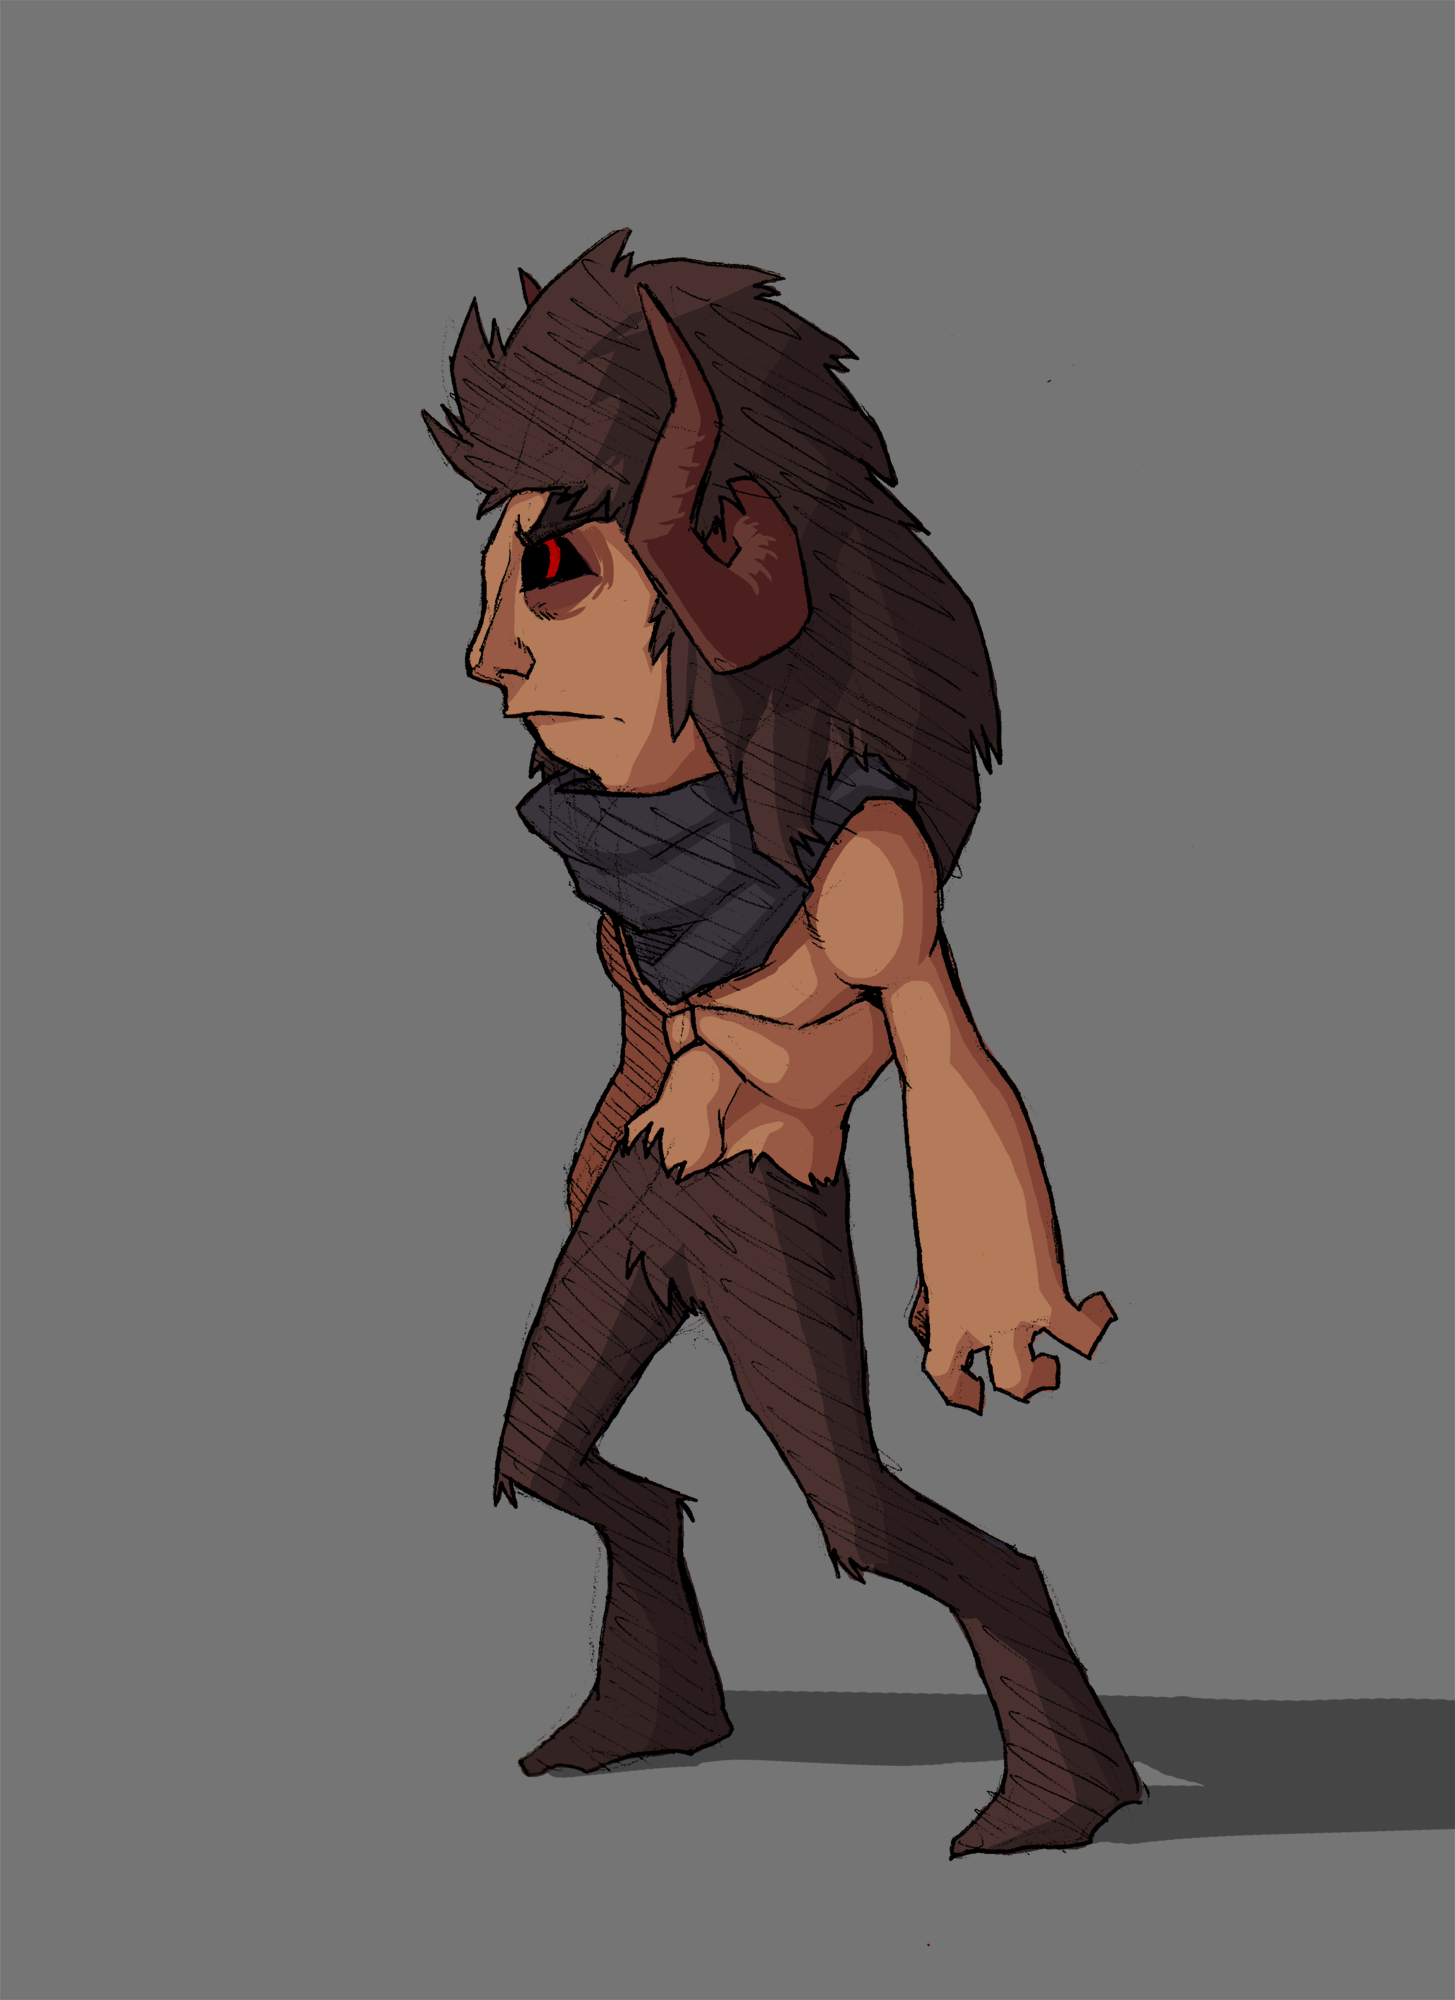 Evil Faun from Faun and Nymph